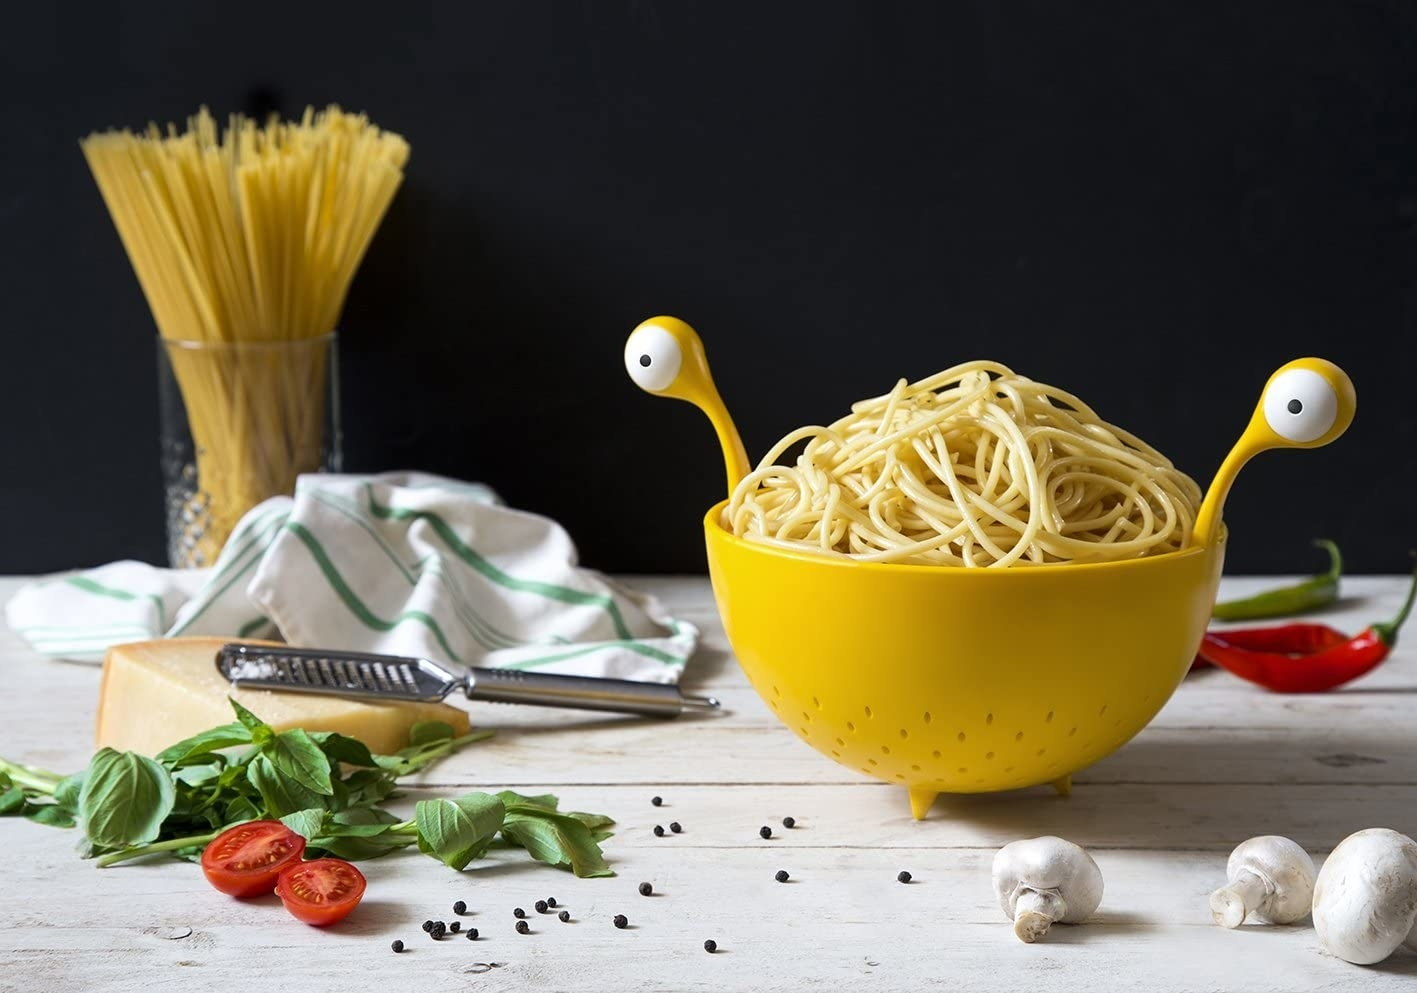 A spaghetti monster strainer full of noodles on table next to various herbs and vegetables and a block of cheese